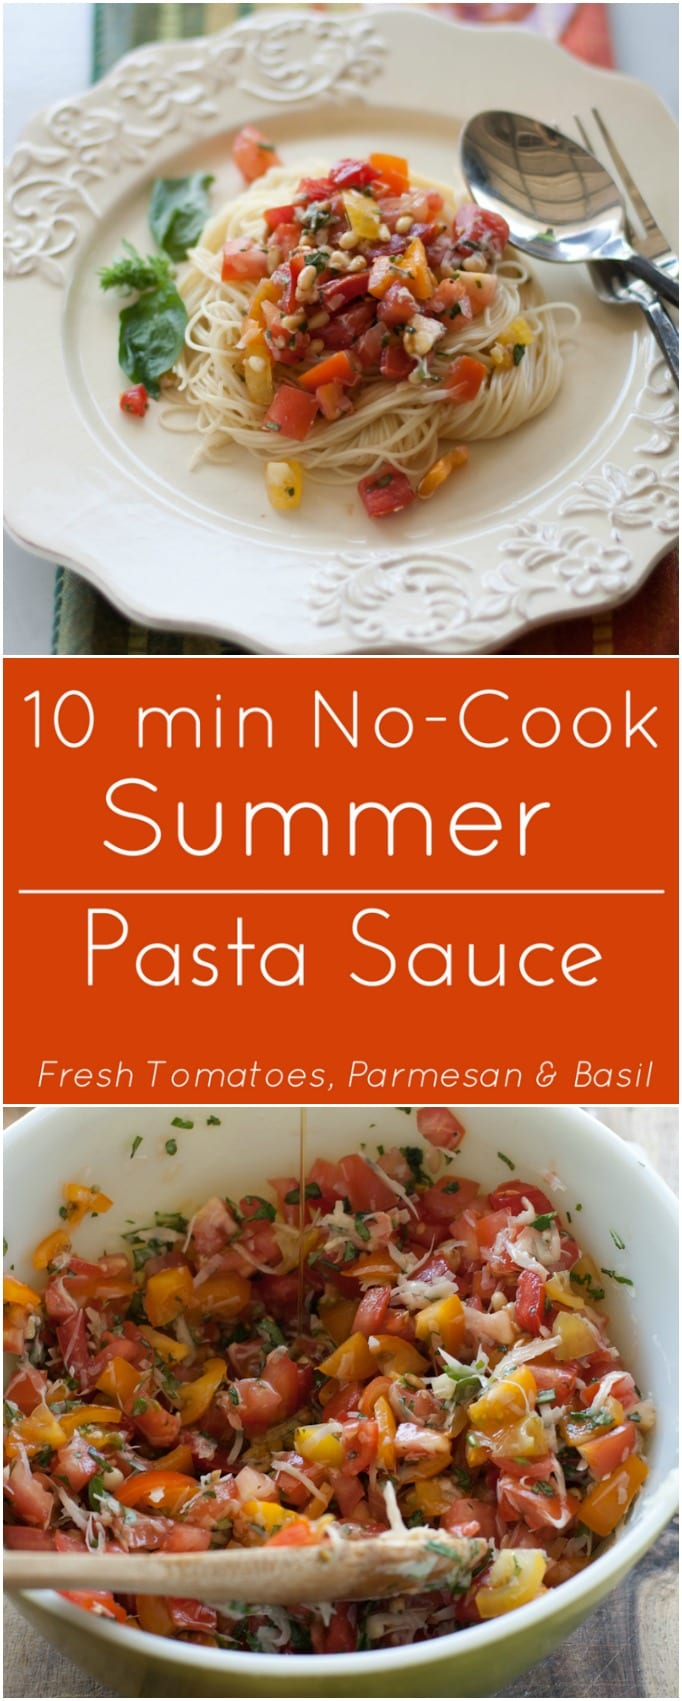 Fresh tomatoes, basil and parmesan cheese make a quick, no-cook tomato sauce to go over pasta or